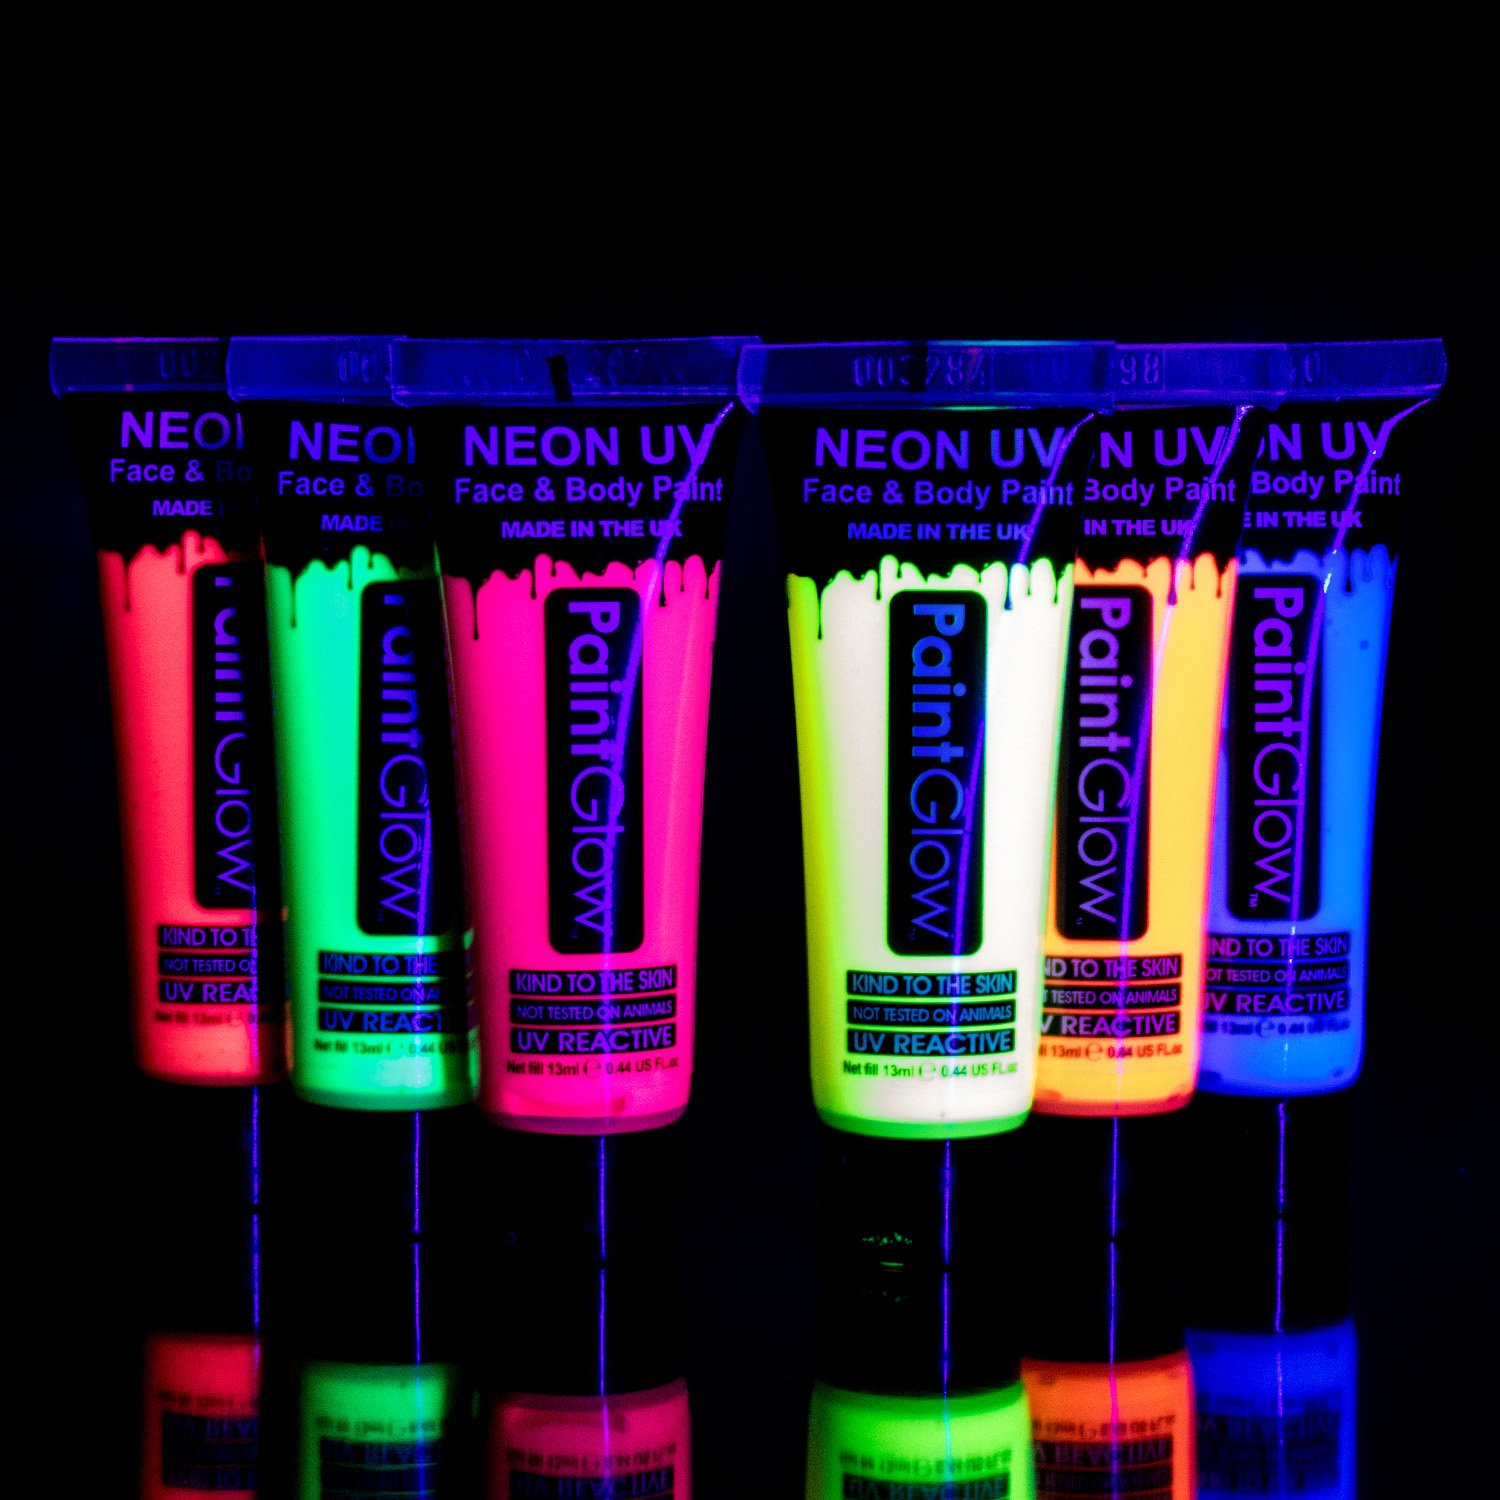 UV Glow Blacklight Face and Body Paint 0.34oz - Set of 6 Tubes - Neon Fluorescent by UV Glow